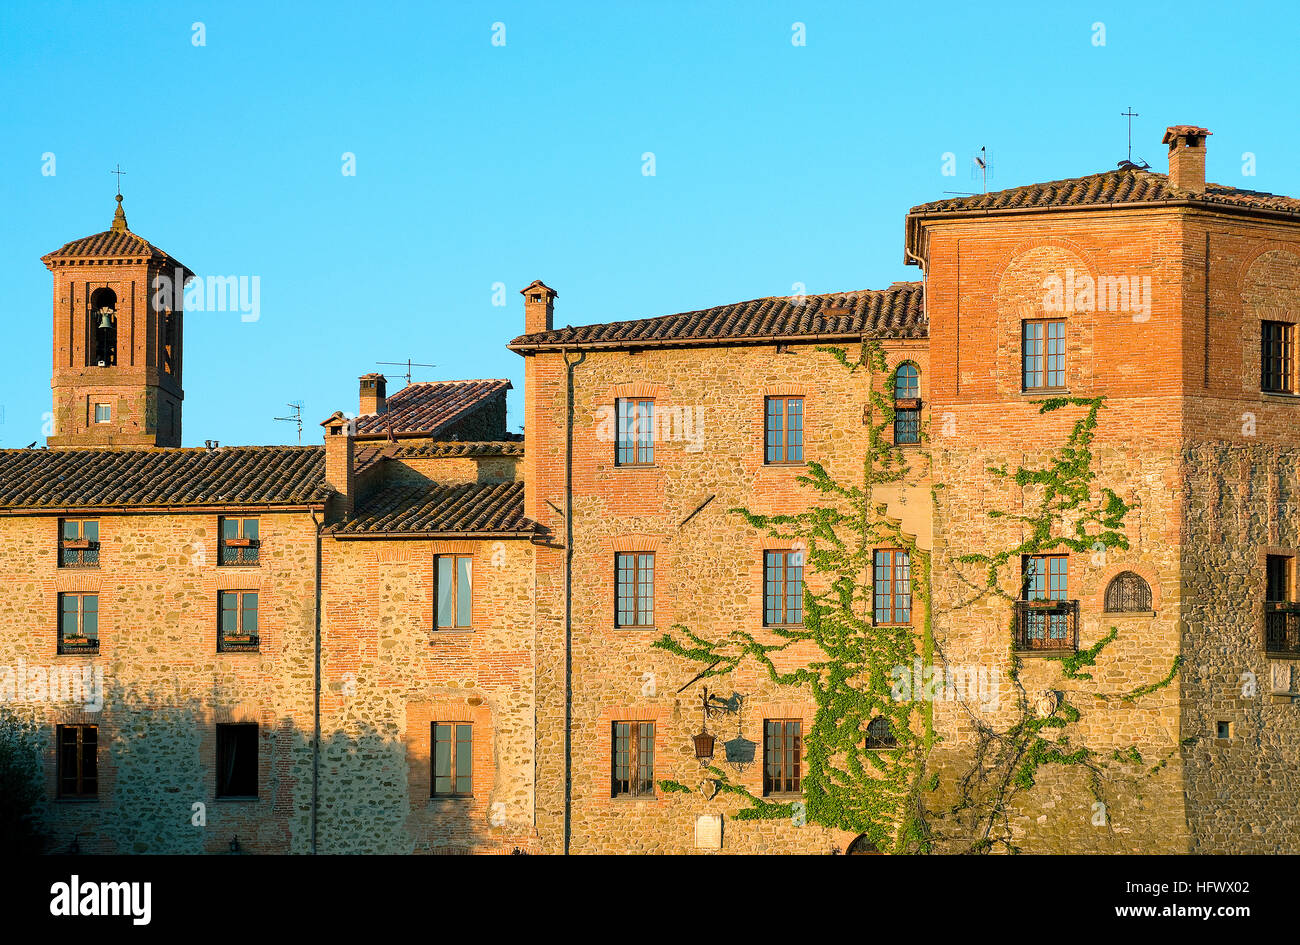 Paciano, on the left the bell tower of San Giuseppe church, Umbria, Italy - Stock Image